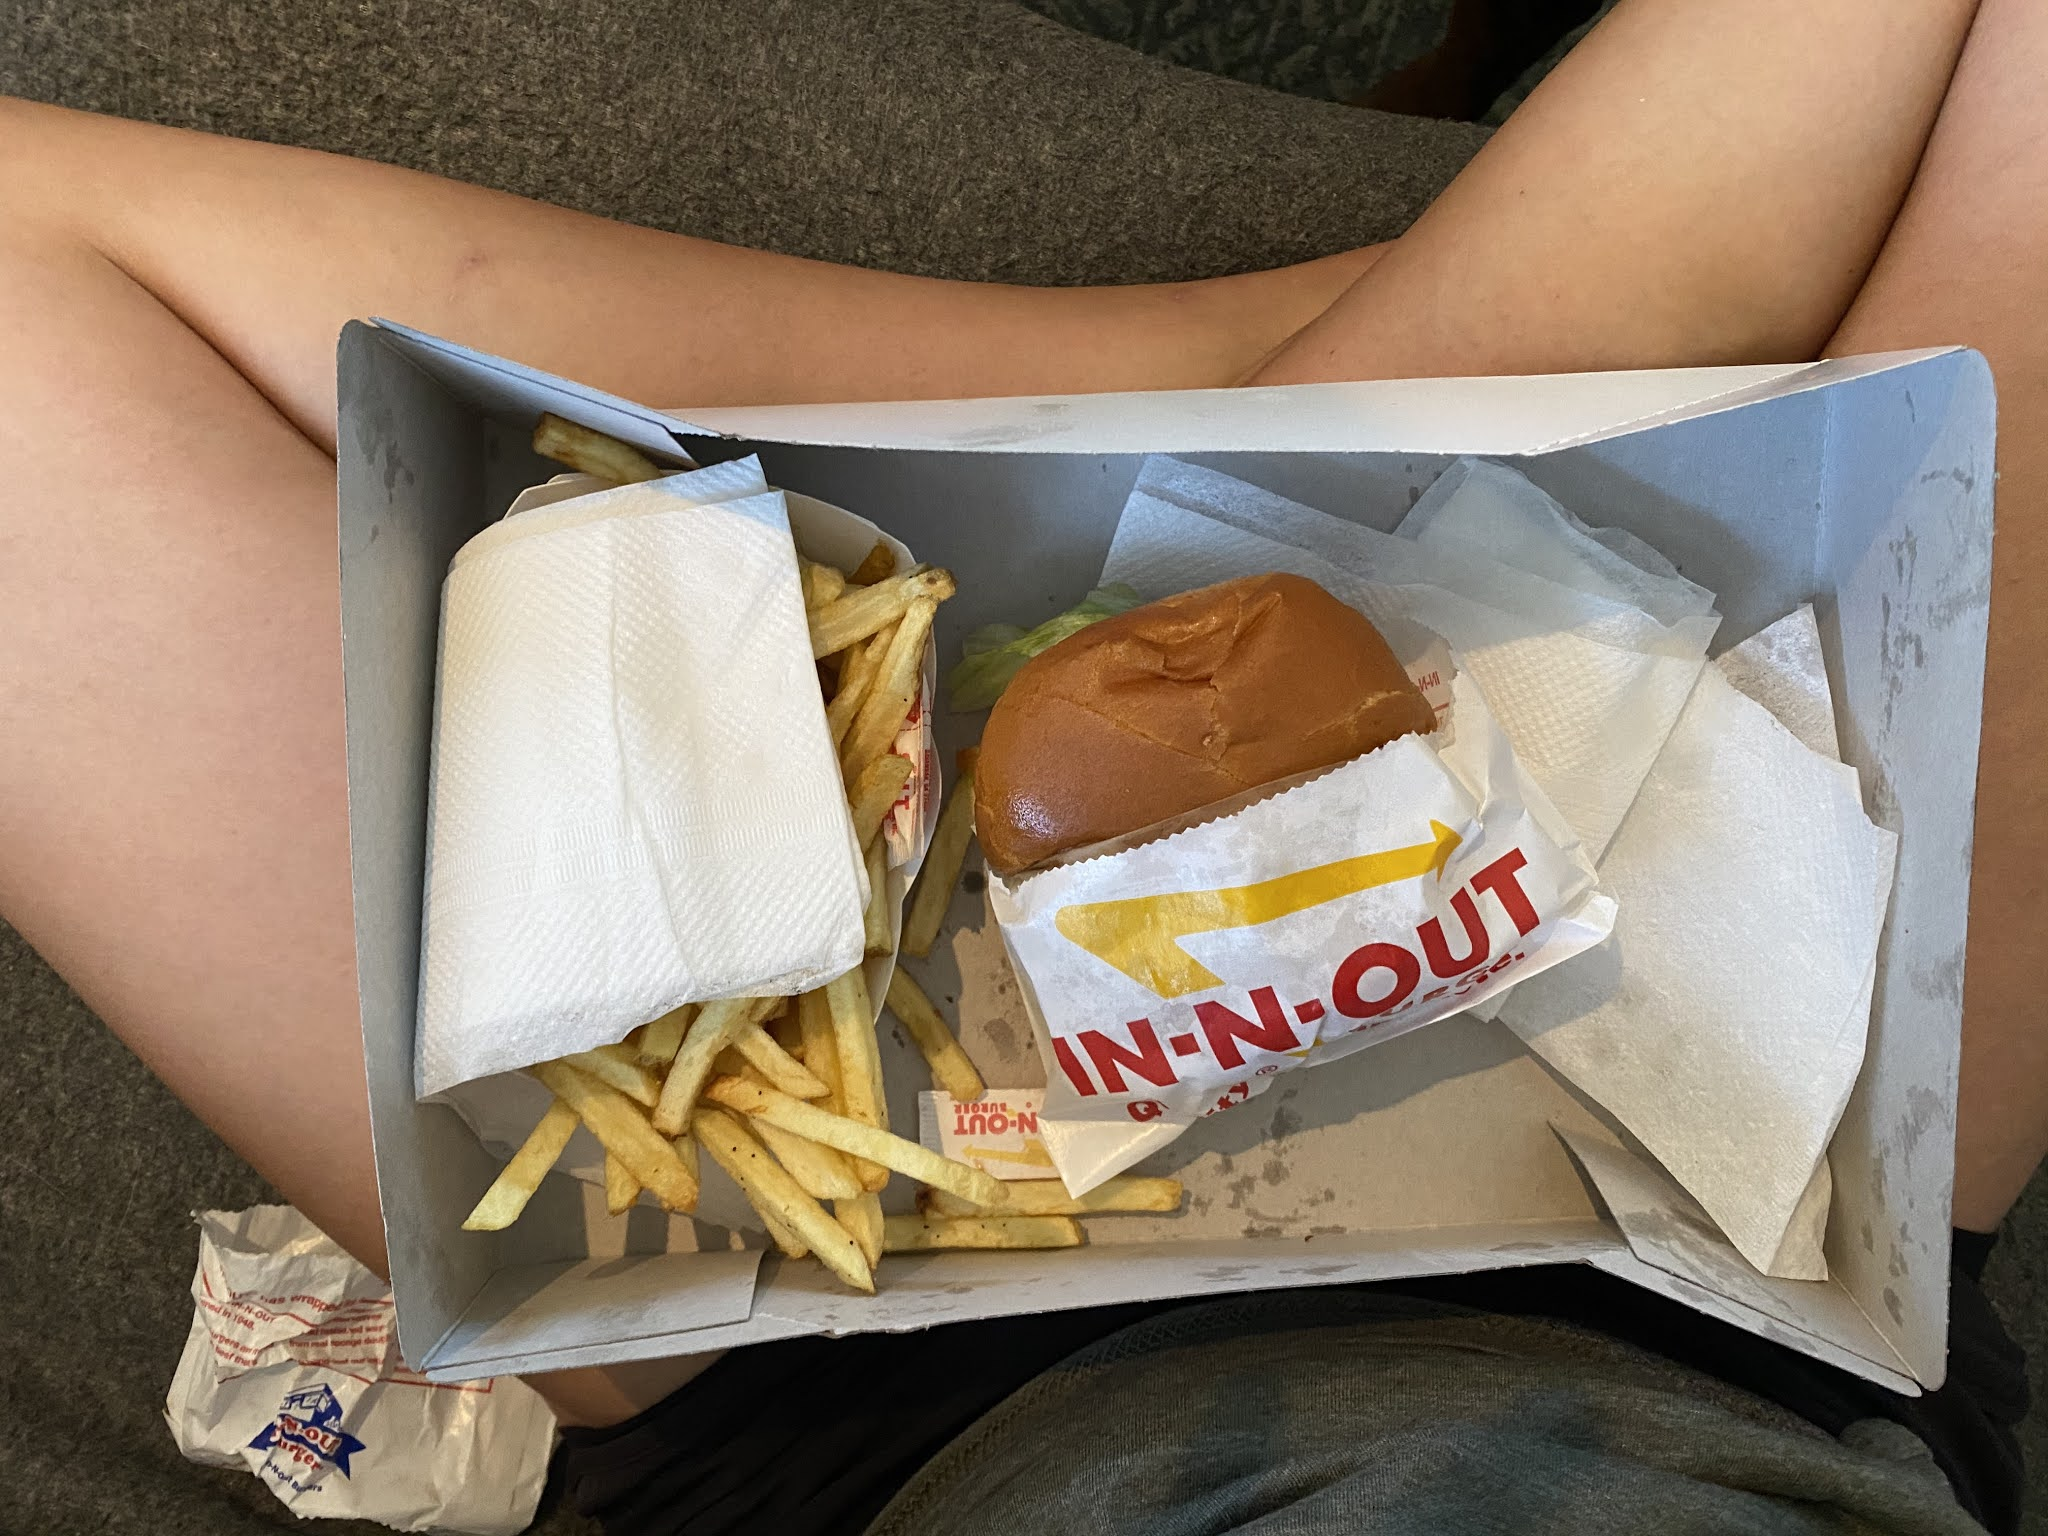 In and Out Burger, California | biblio-style.com